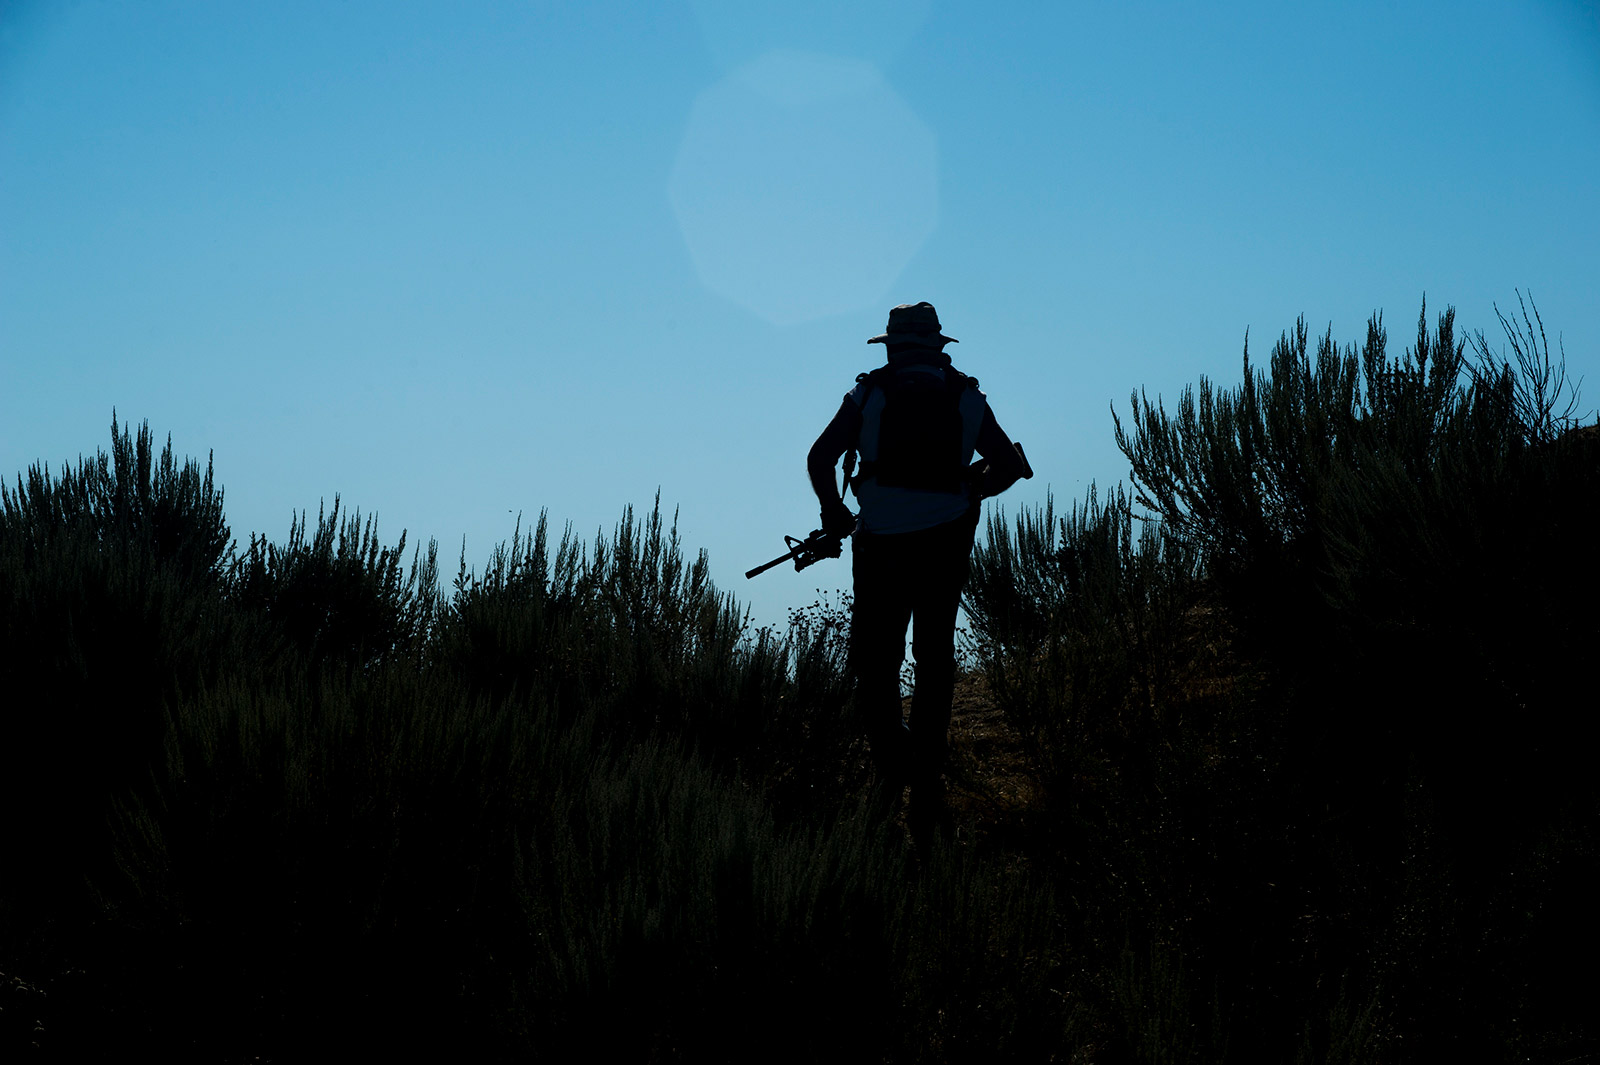 Cresting a small hill on his 250-acre ranch along the U.S.-Mexico border, 78-year-old Bob Maupin of Boulevard is silhouetted with his AR-10, or ArmaLite Rifle. This photo is from Aug. 30, 2017. <em>(Brandon Quester/inewsource)</em>